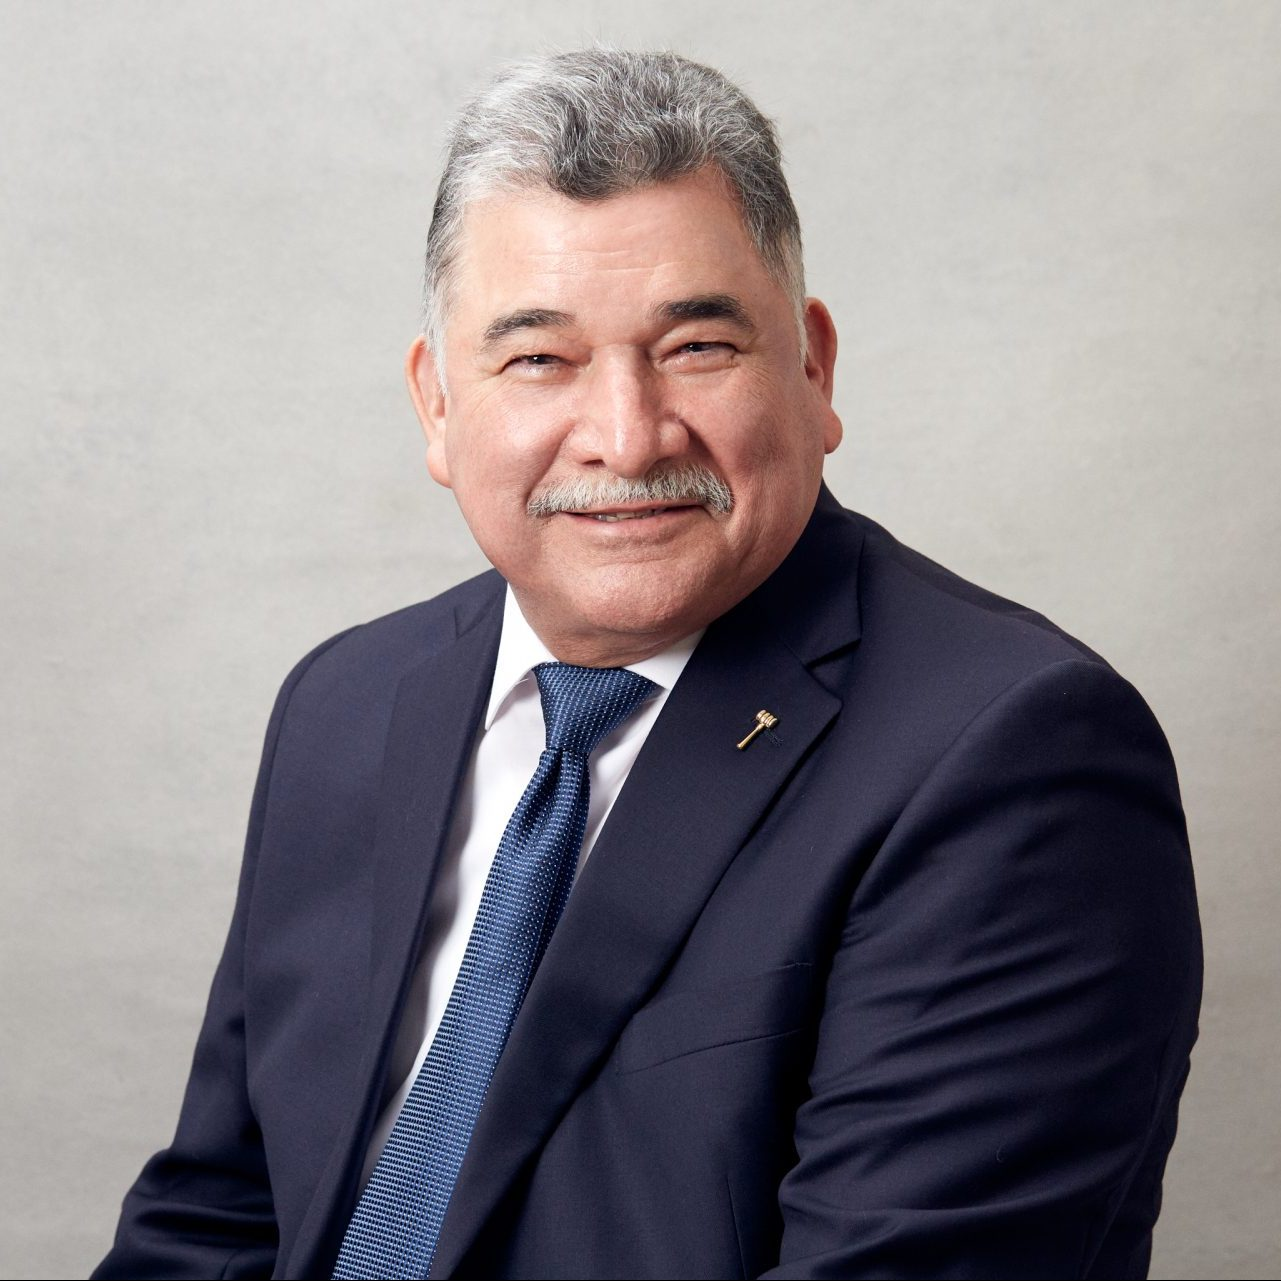 Judge Robert Garza Headshot